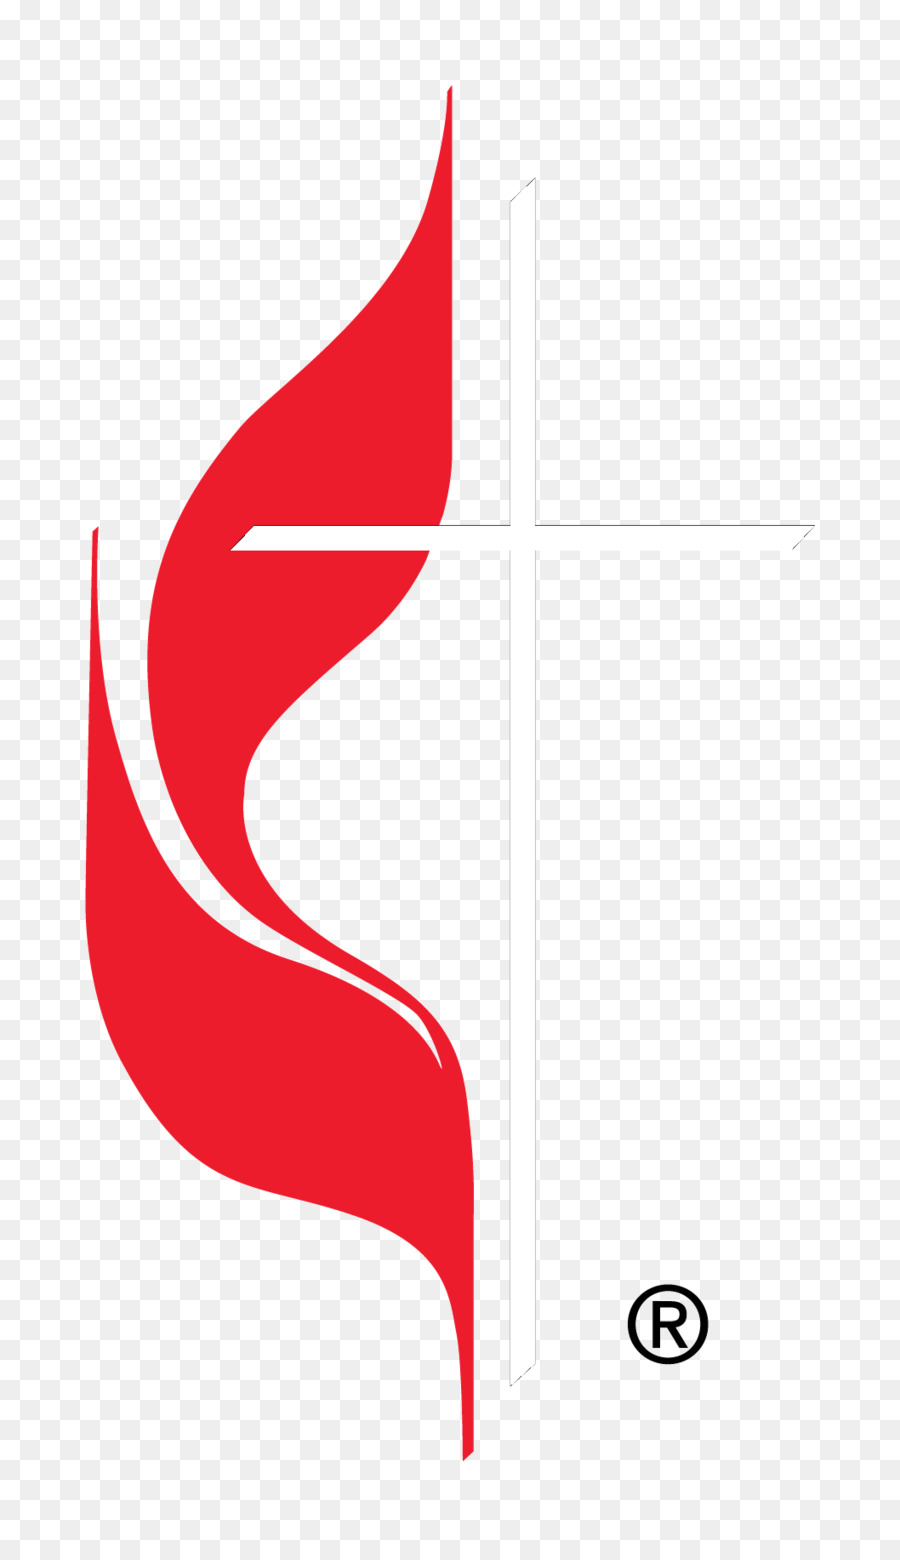 cross and flame methodism united methodist church christian cross rh kisspng com free methodist cross and flame clipart free methodist cross and flame clipart